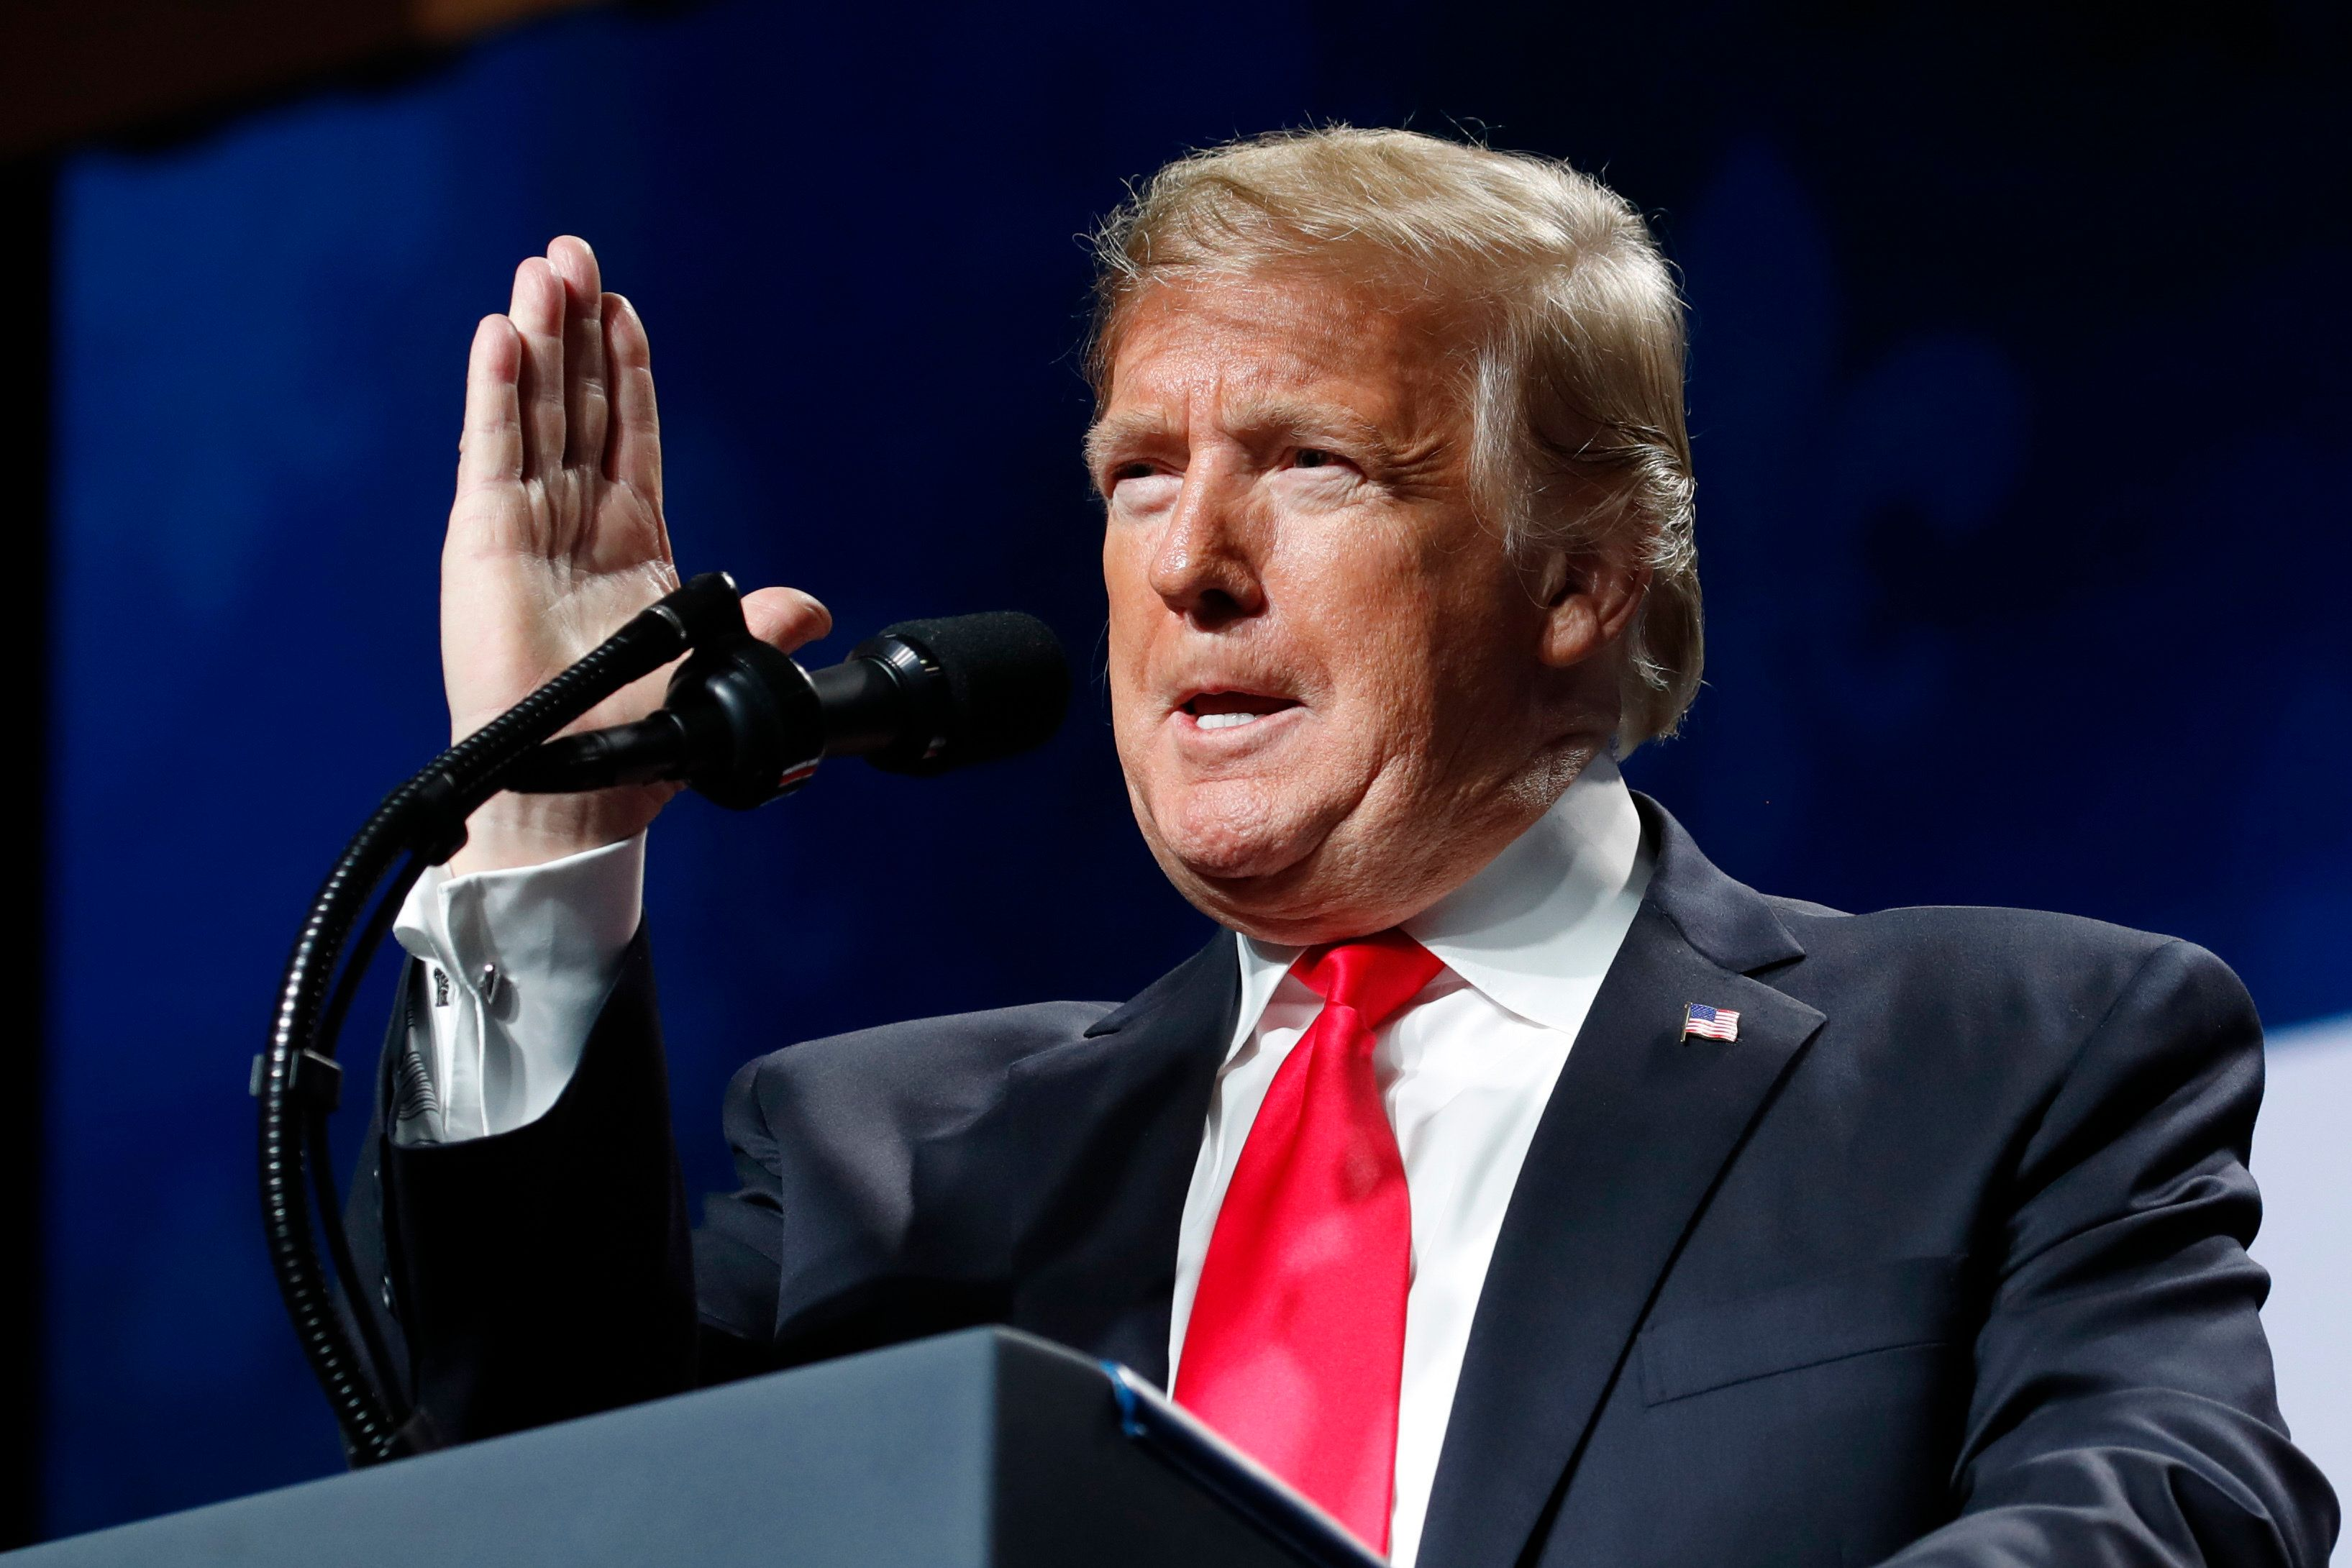 President Donald Trump speaks at the American Farm Bureau Federation's 100th Annual Convention, Monday Jan. 14, 2019, in New Orleans. (AP Photo/Jacquelyn Martin)